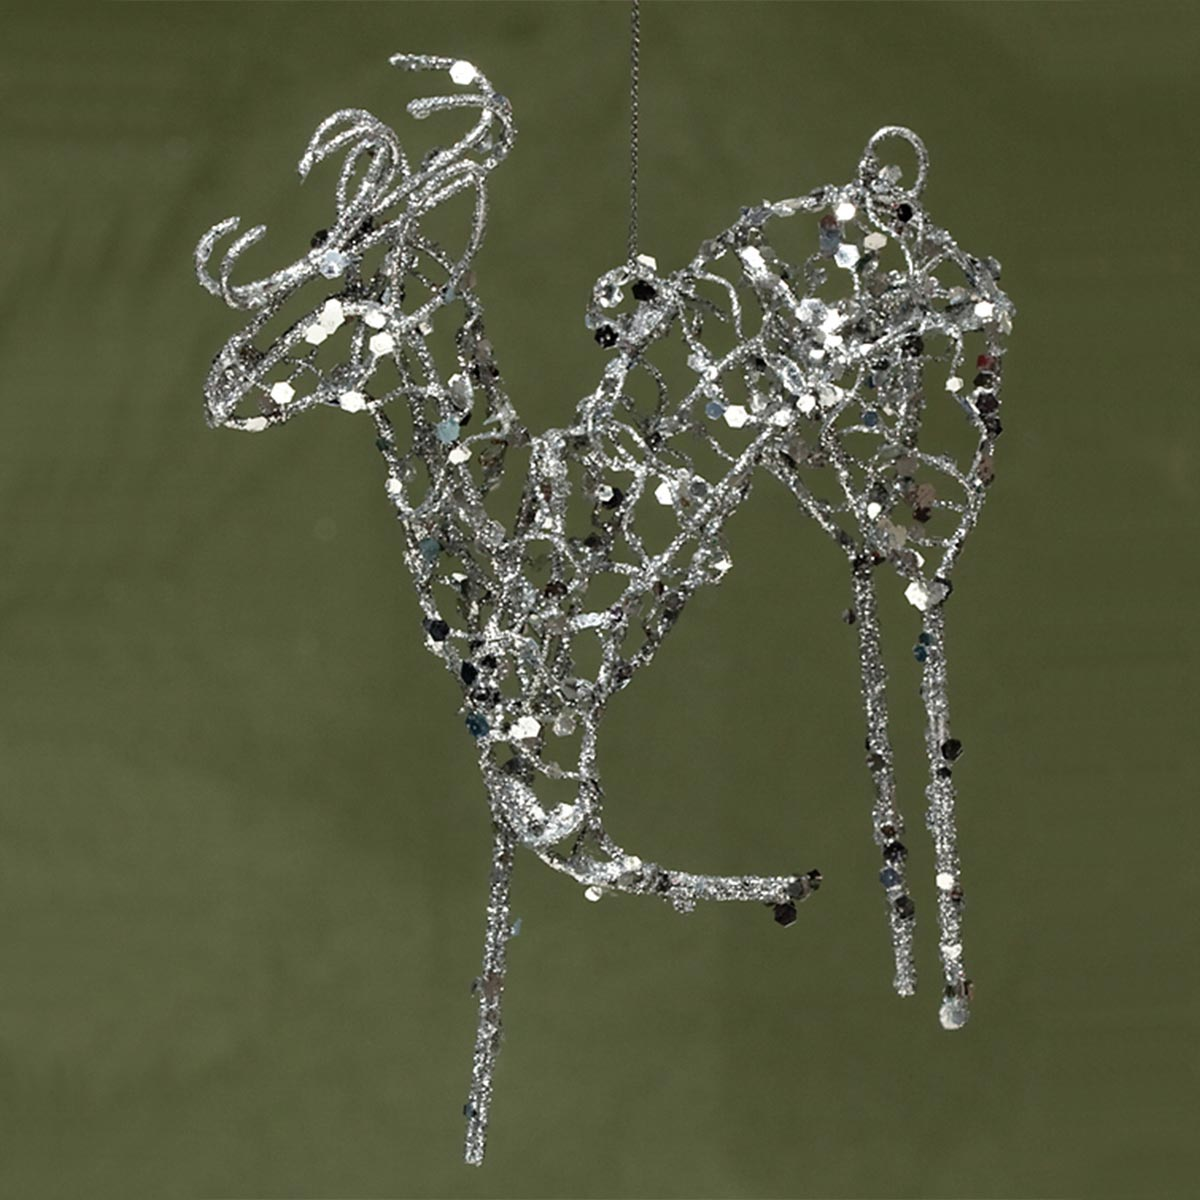 WIRE GLITTER DEER ORNAMENT SILVER